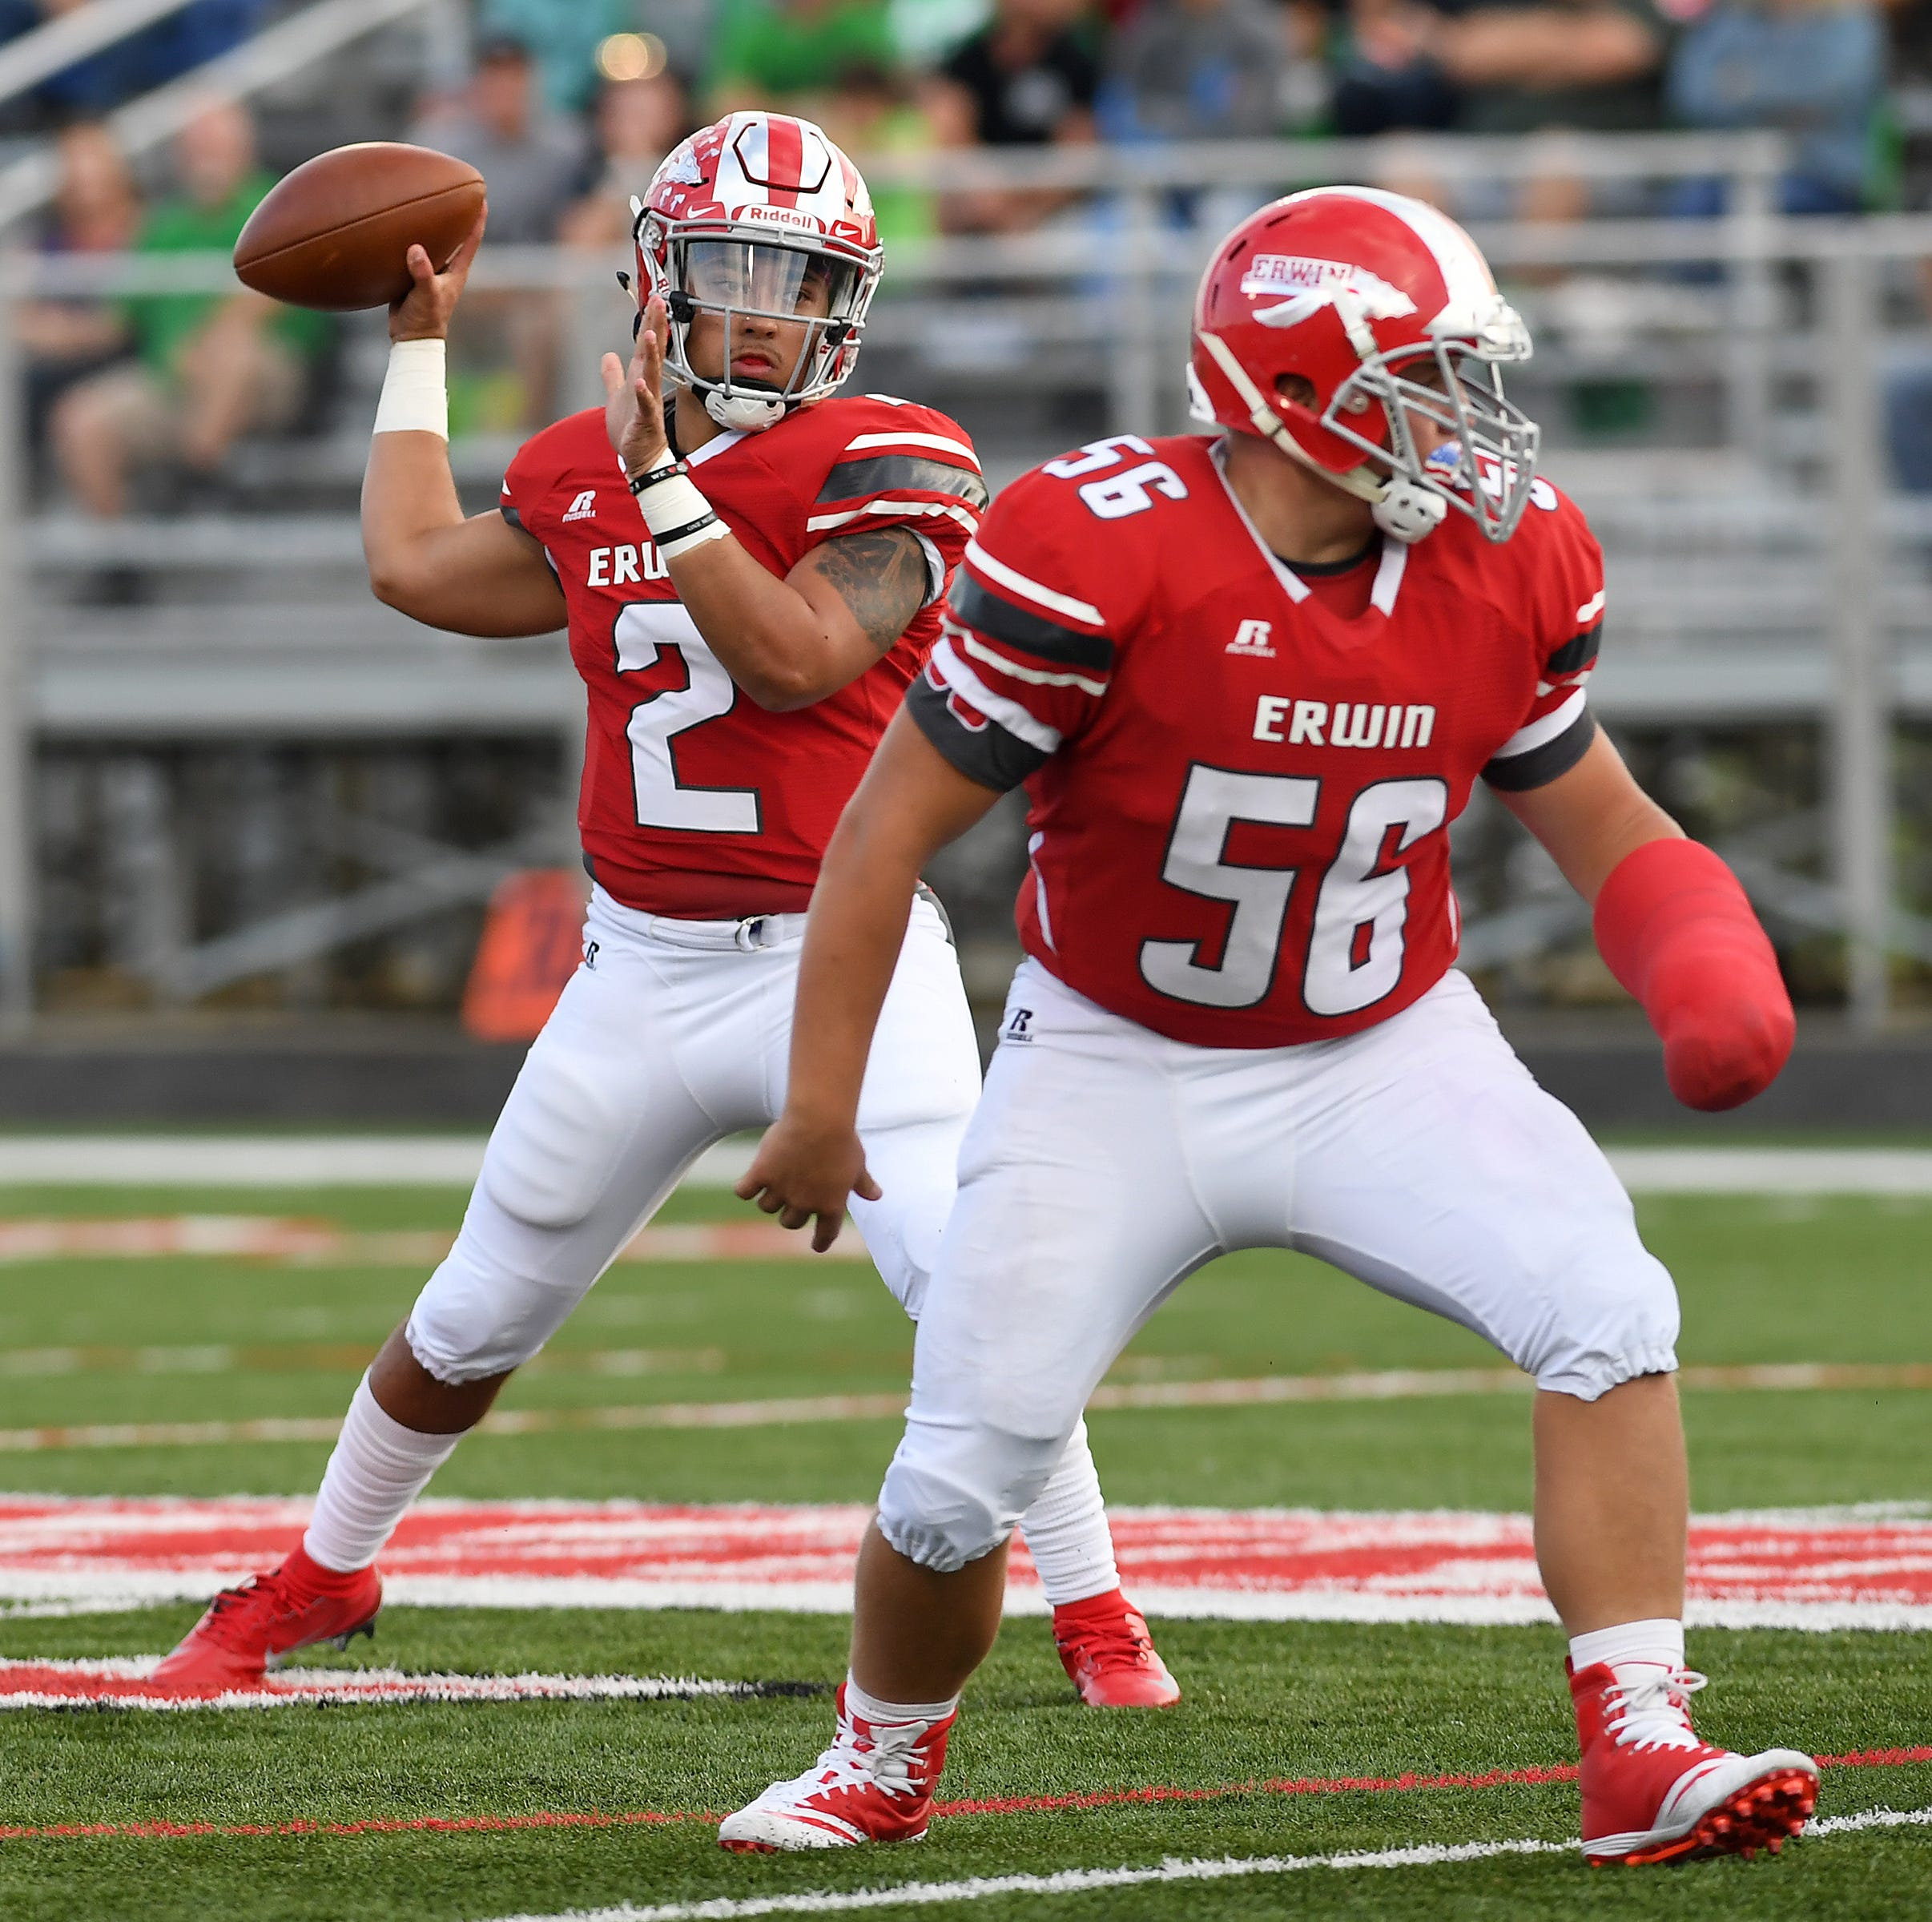 Erwin quarterback receives first college offer